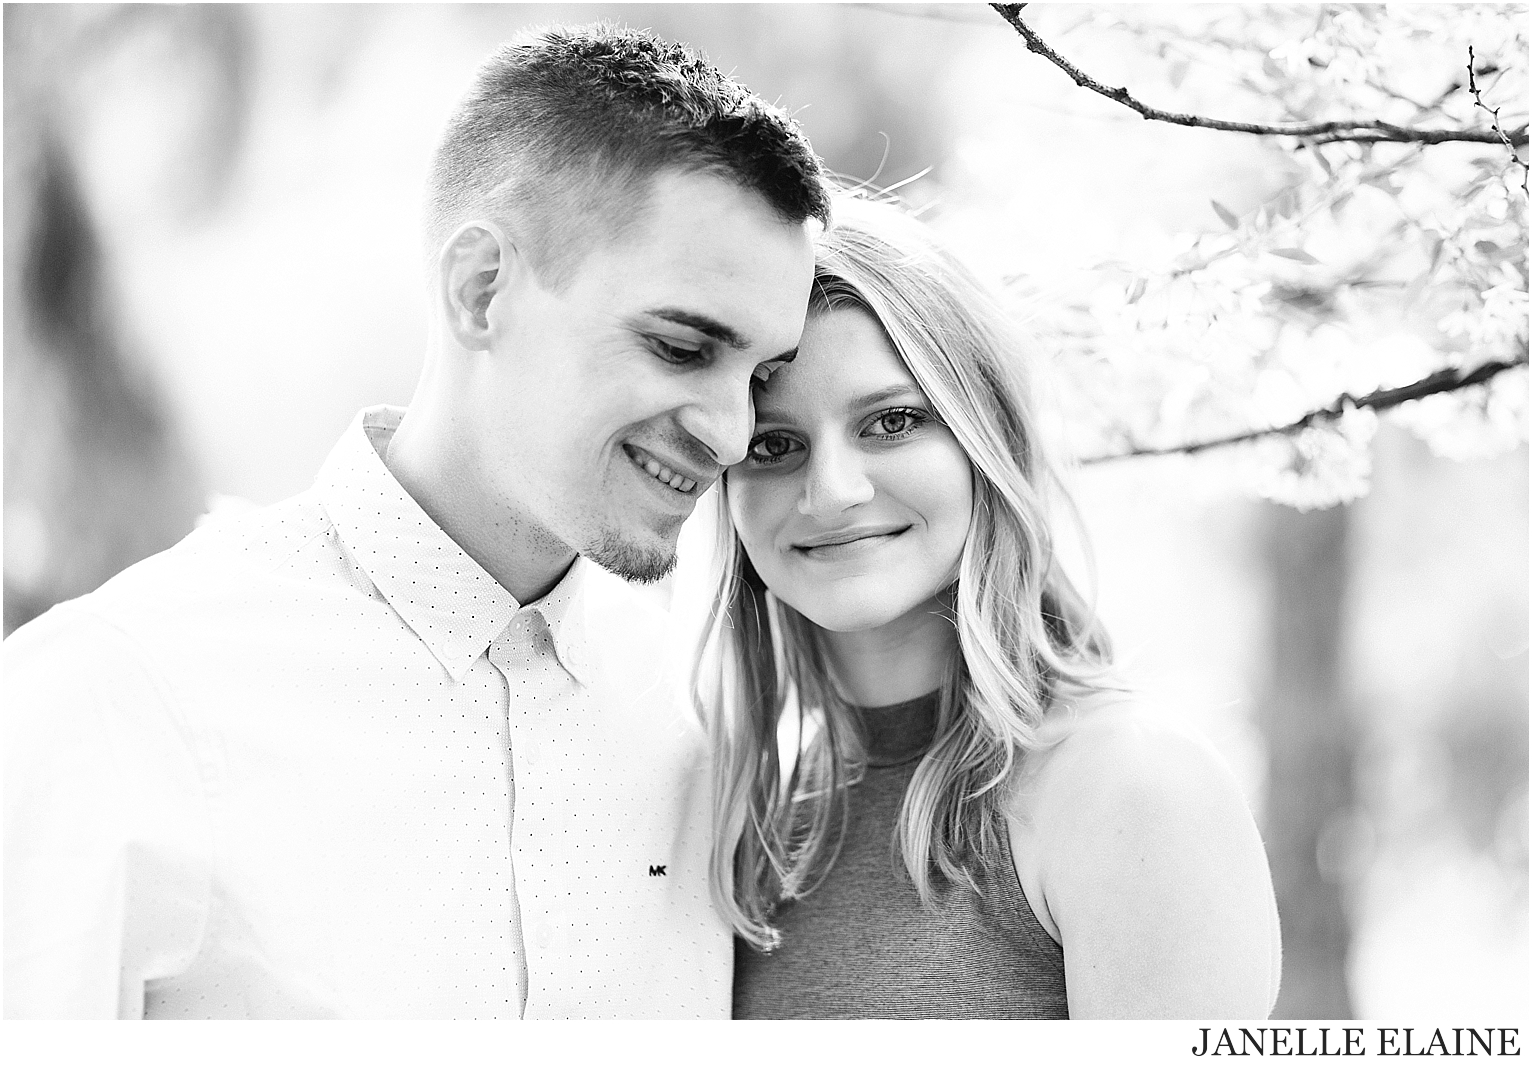 tricia and nate engagement photos-janelle elaine photography-68.jpg